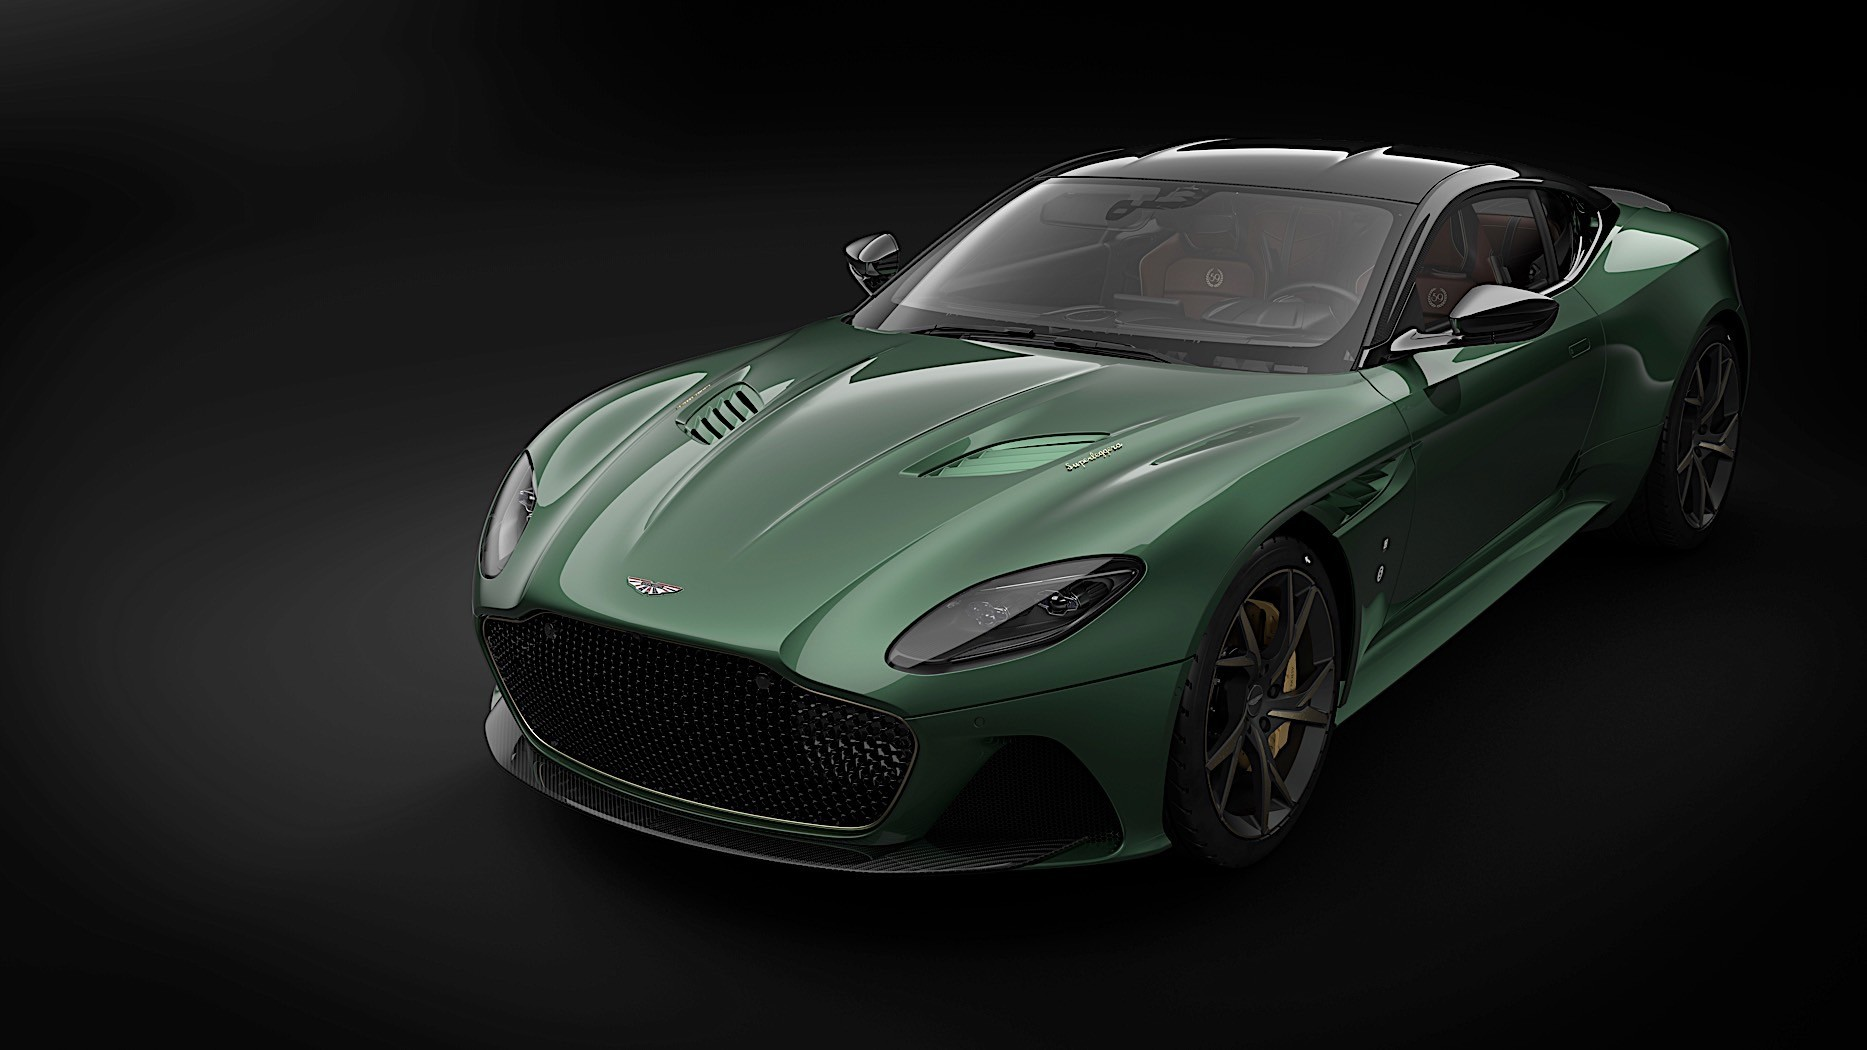 Aston Martin launches race-inspired DBS 59 special edition